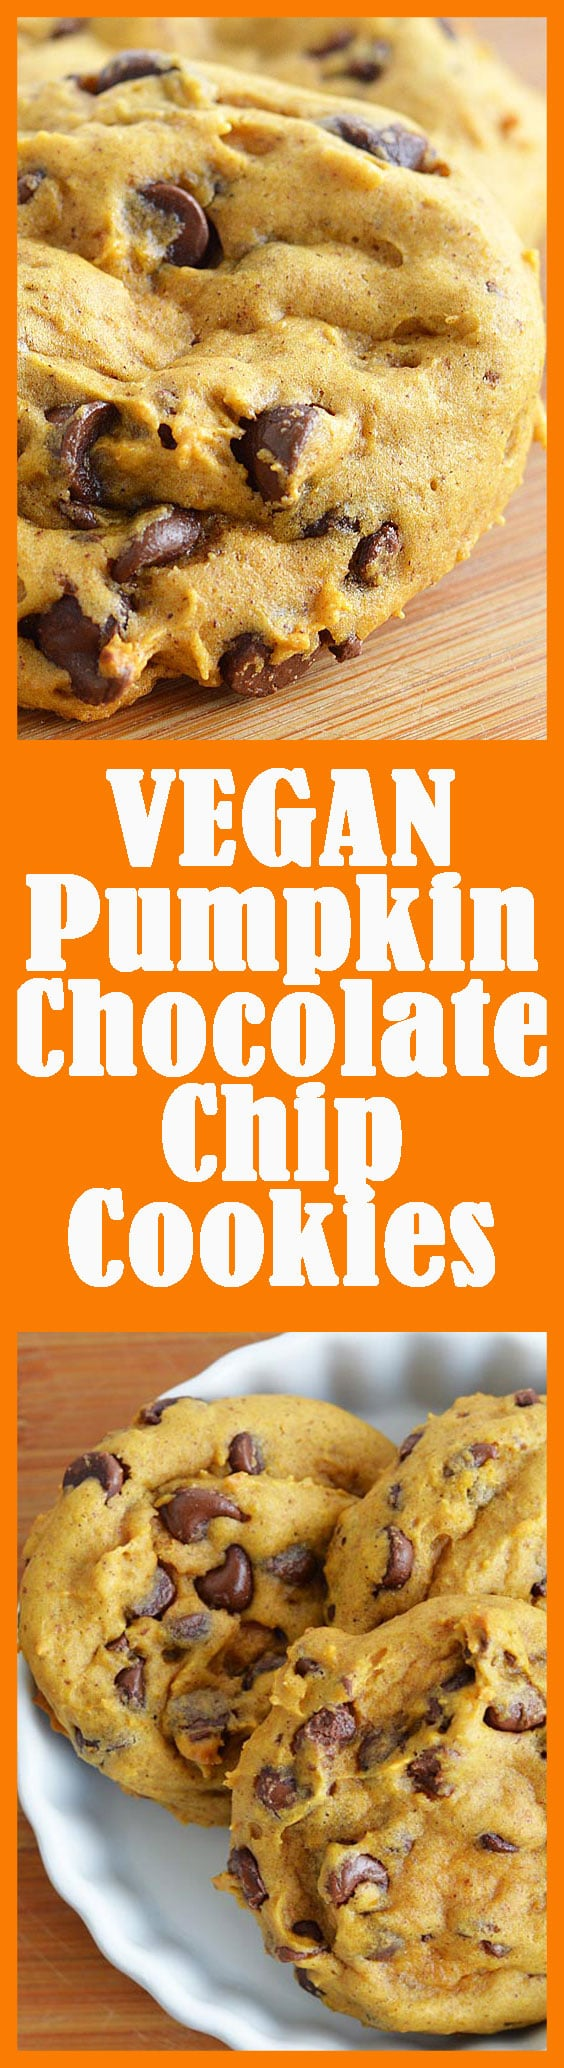 Pumpkin Chocolate Chip Cookies - TheVegLife